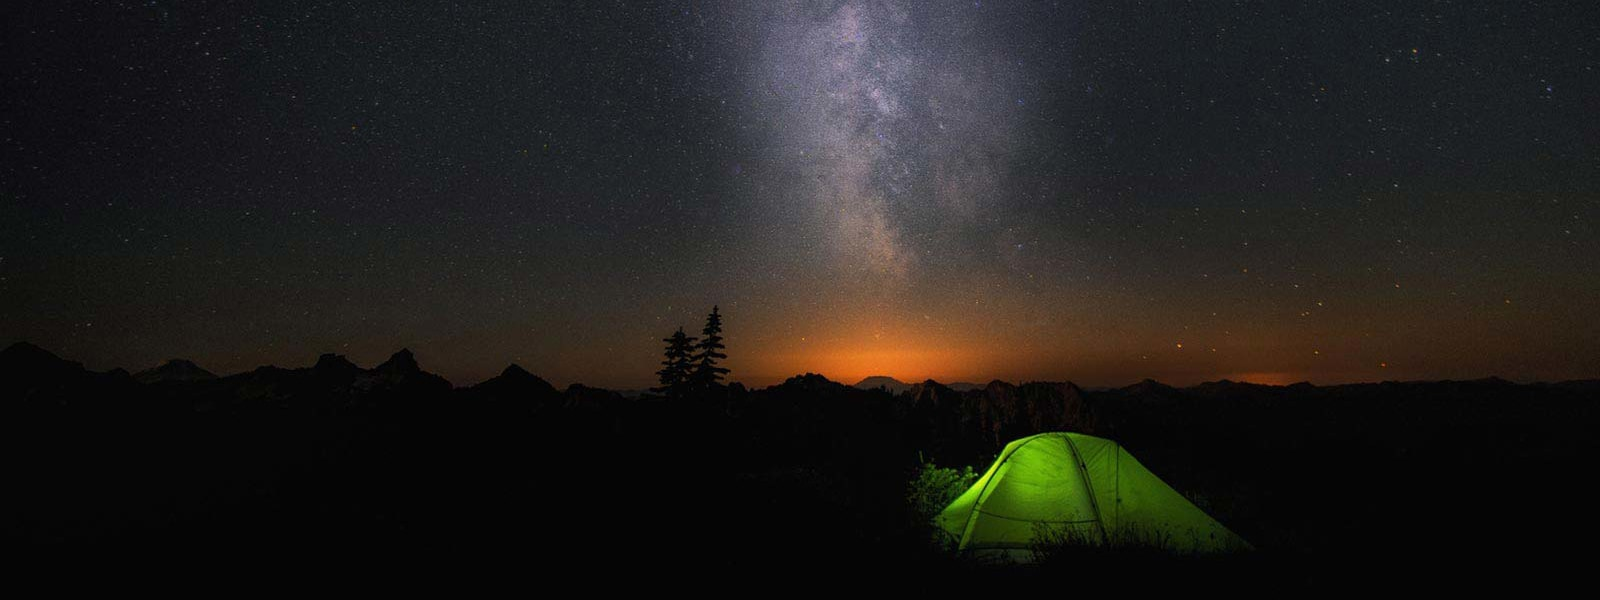 Una tenda verde in una notte scura con la Via lattea all'orizzonte